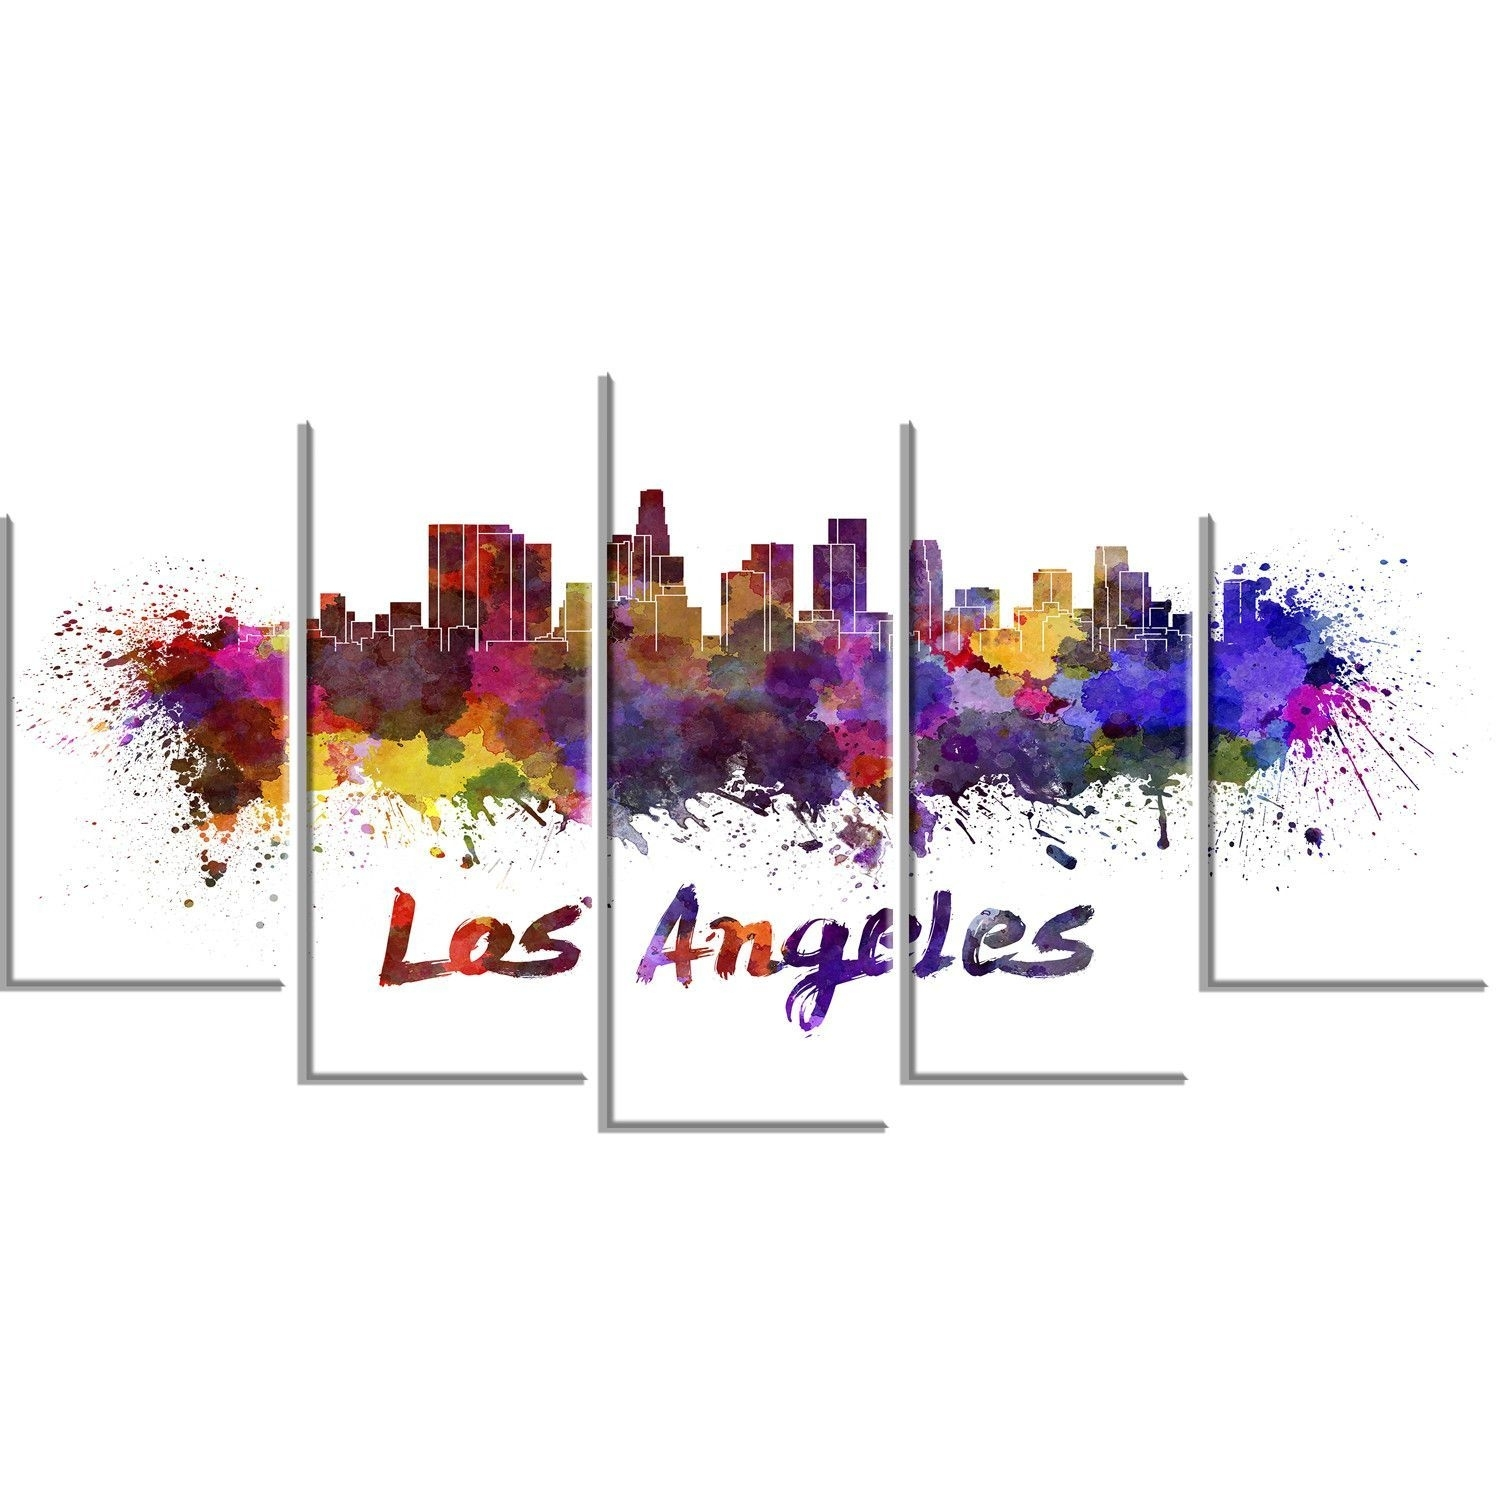 Los Angeles Skyline Cityscape 5 Piece Graphic Art On Wrapped Throughout Latest Los Angeles Canvas Wall Art (View 11 of 15)